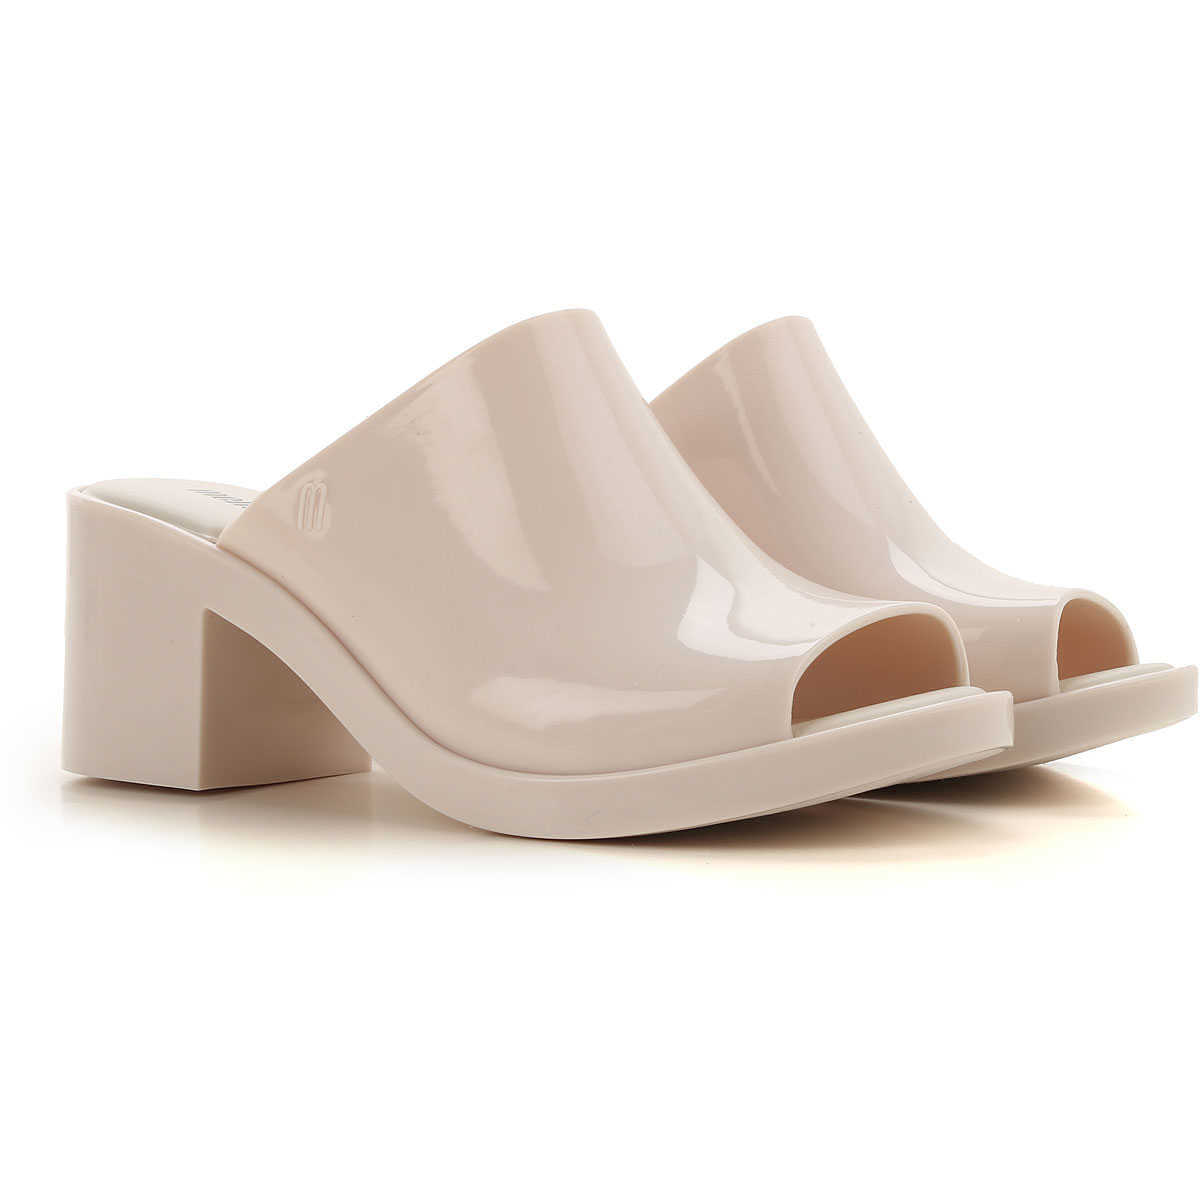 Melissa Wedges for Women On Sale Beige DK - GOOFASH - Womens HOUSE SHOES